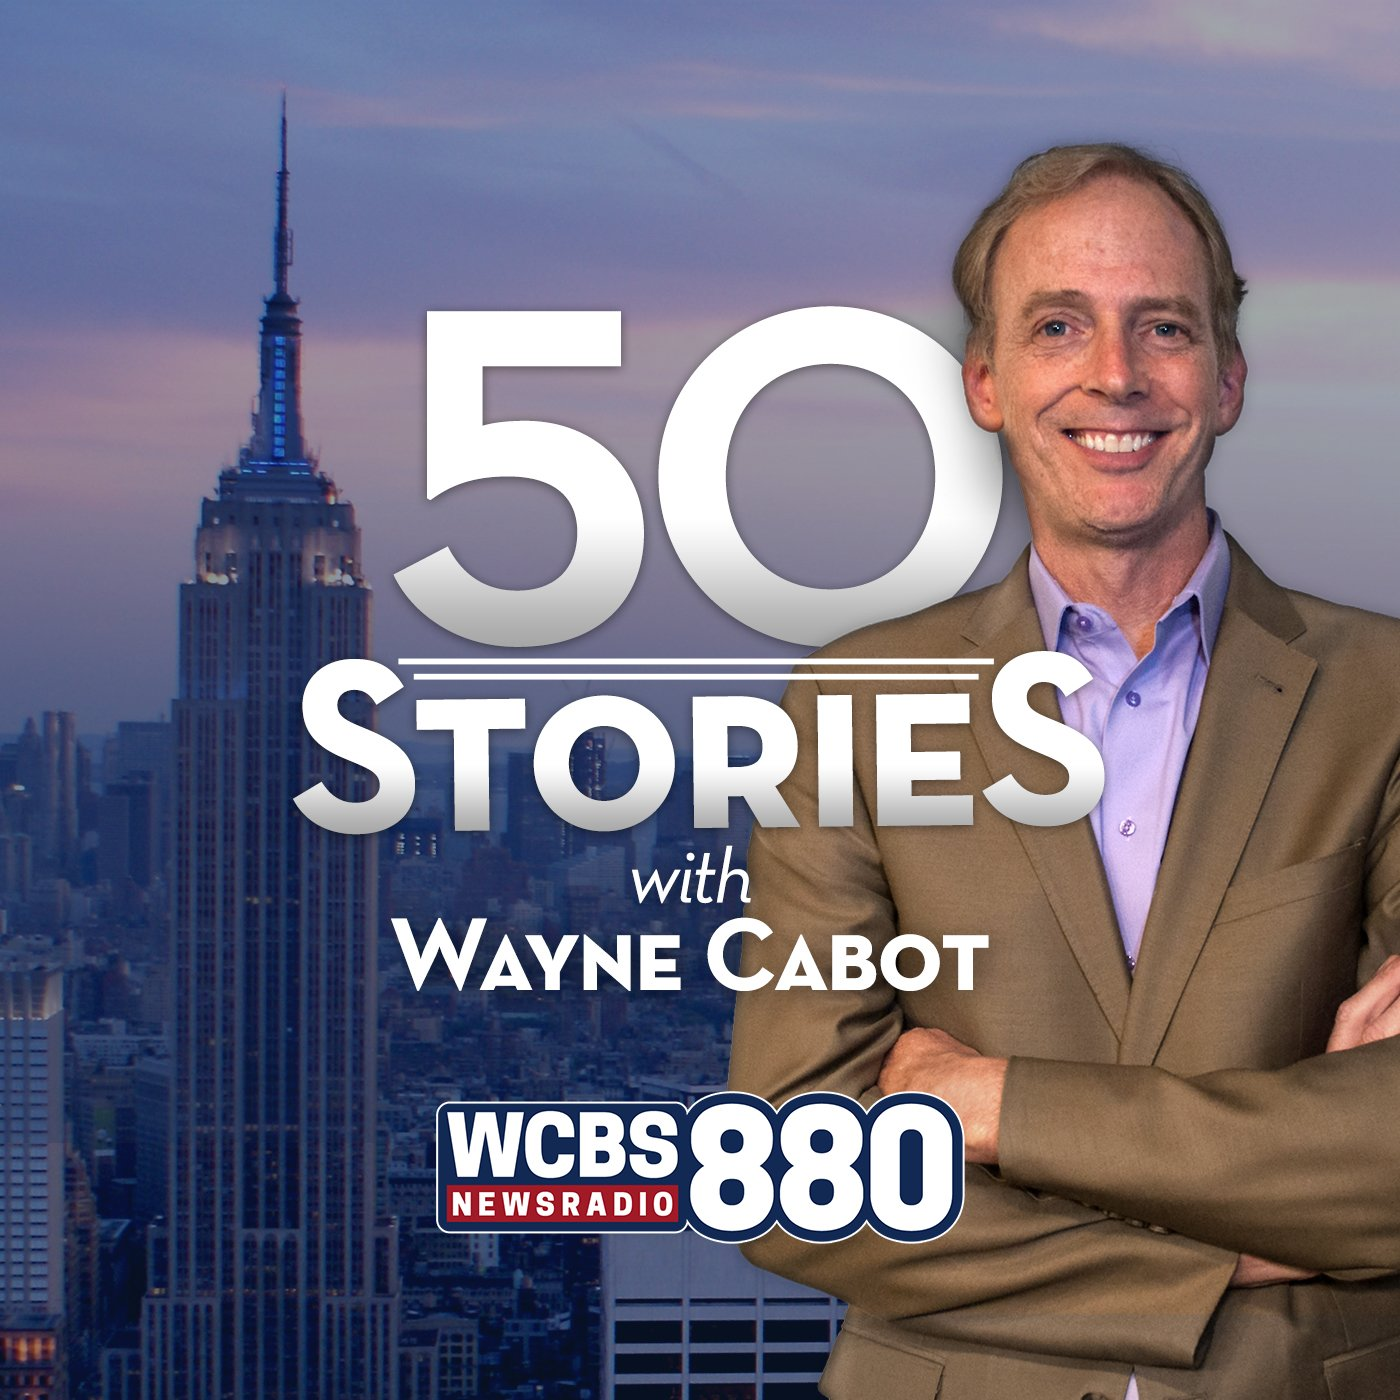 50 Stories with Wayne Cabot